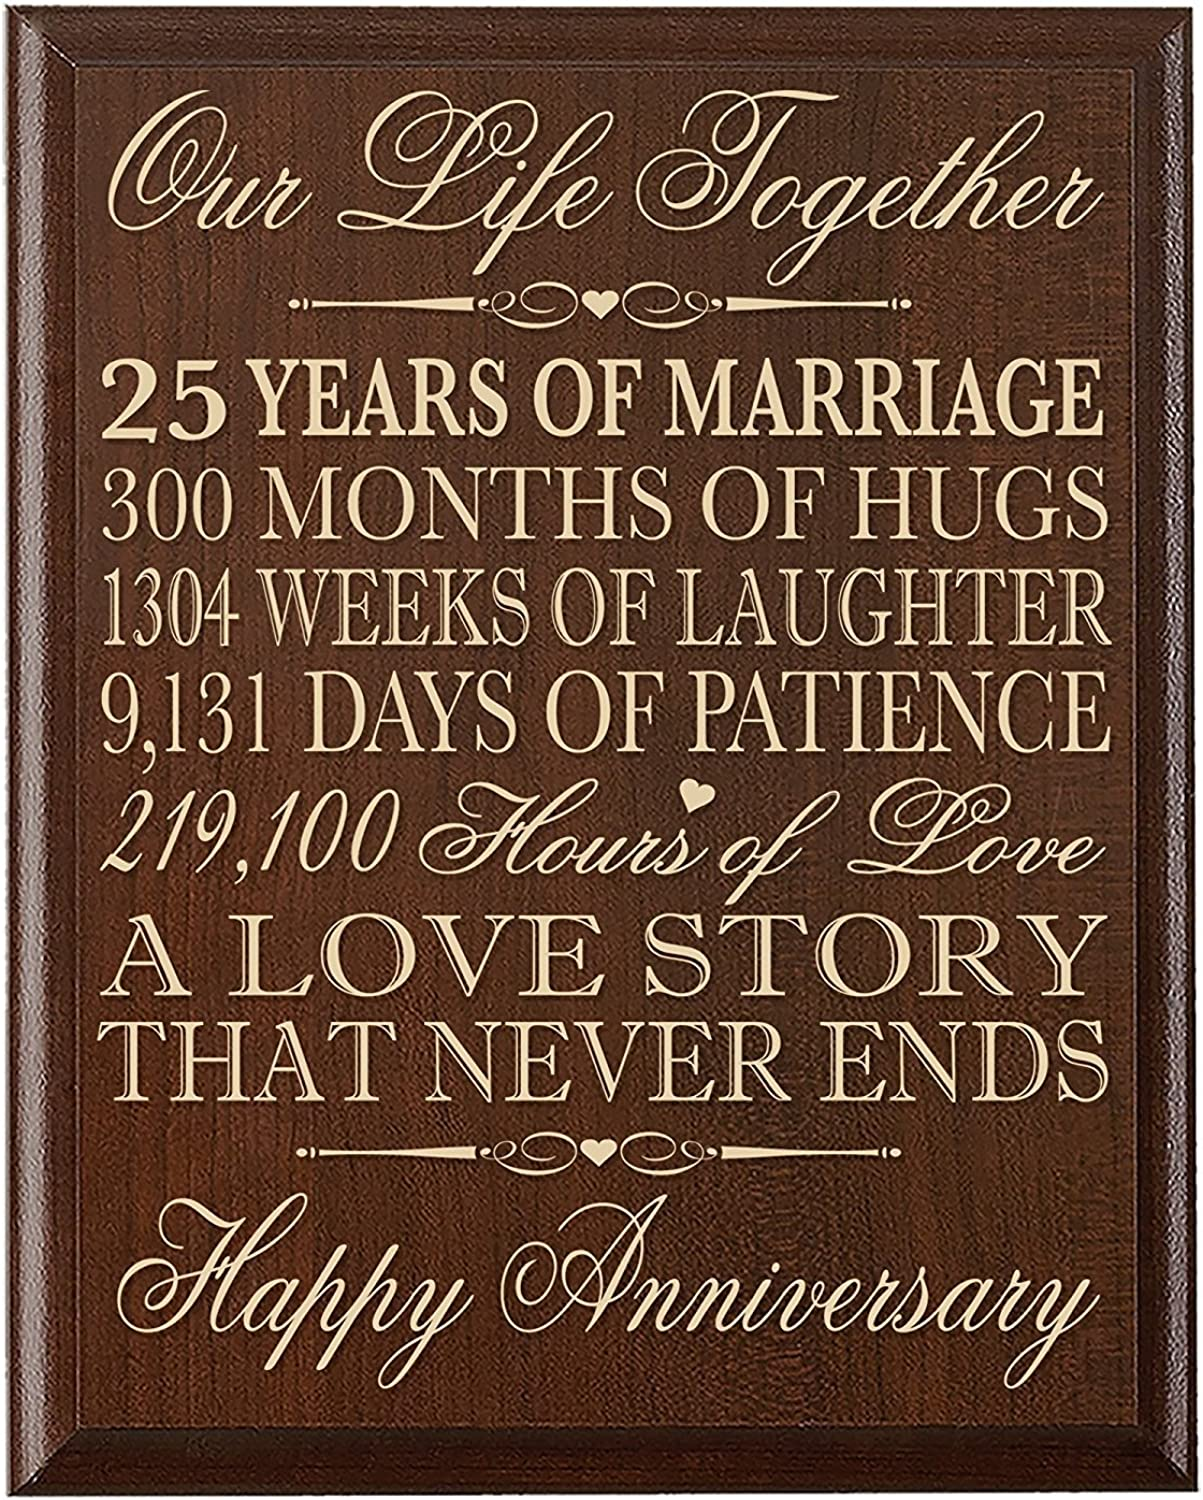 LifeSong Milestones 25th Wedding Anniversary Wall Plaque Gifts for Couple, 25th Anniversary Gifts for Her,25th Wedding Anniversary Gifts for Him 12  W X 15  H Wall Plaque By